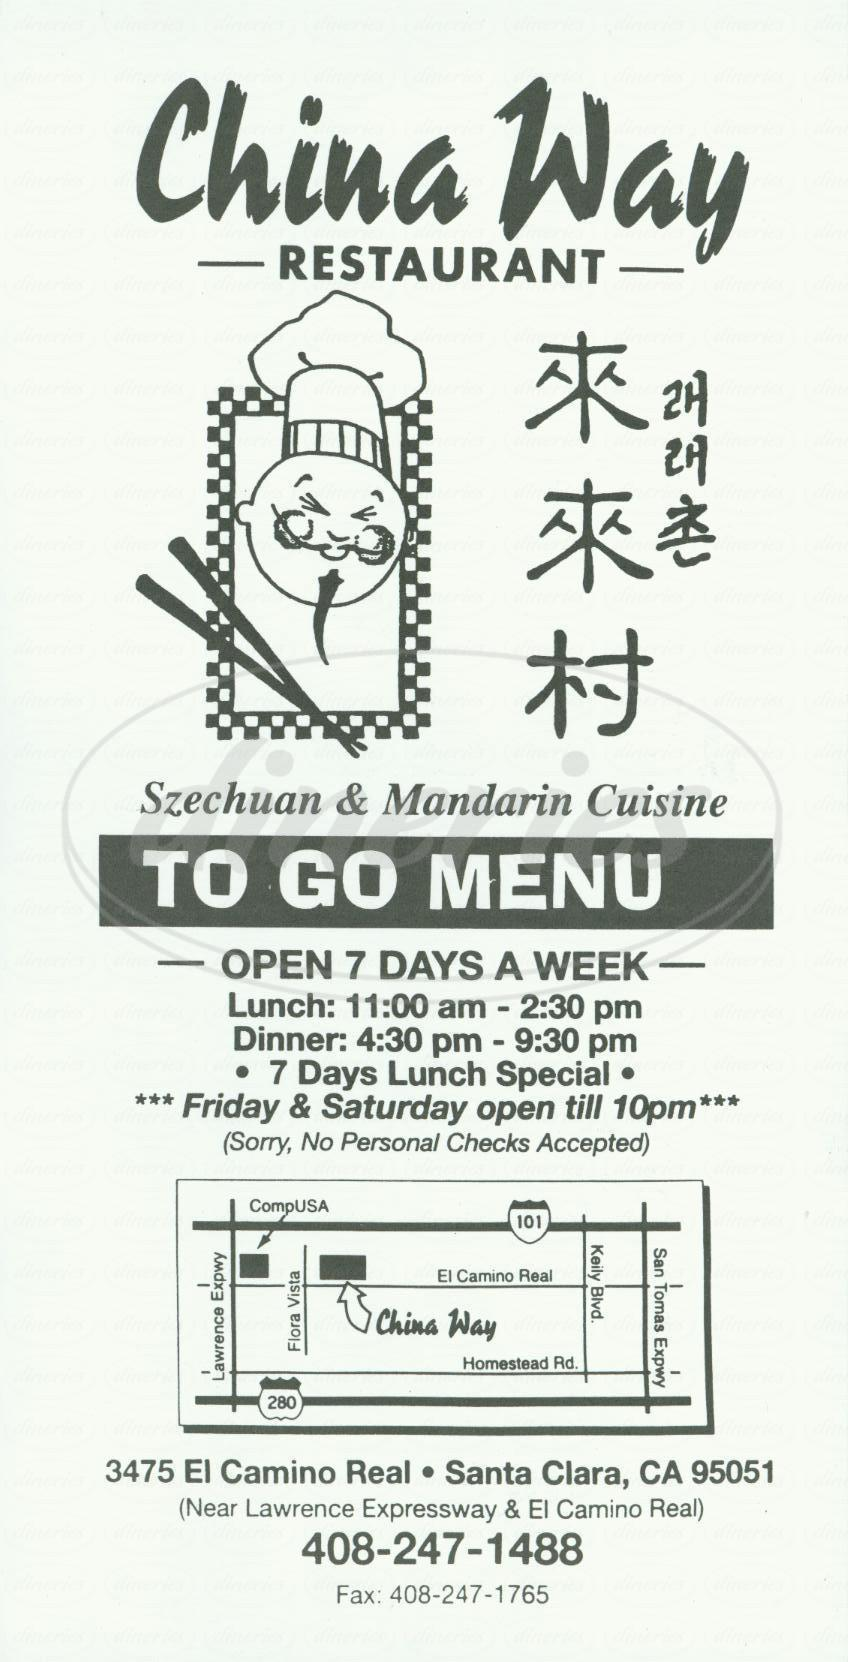 menu for China Way Restaurant